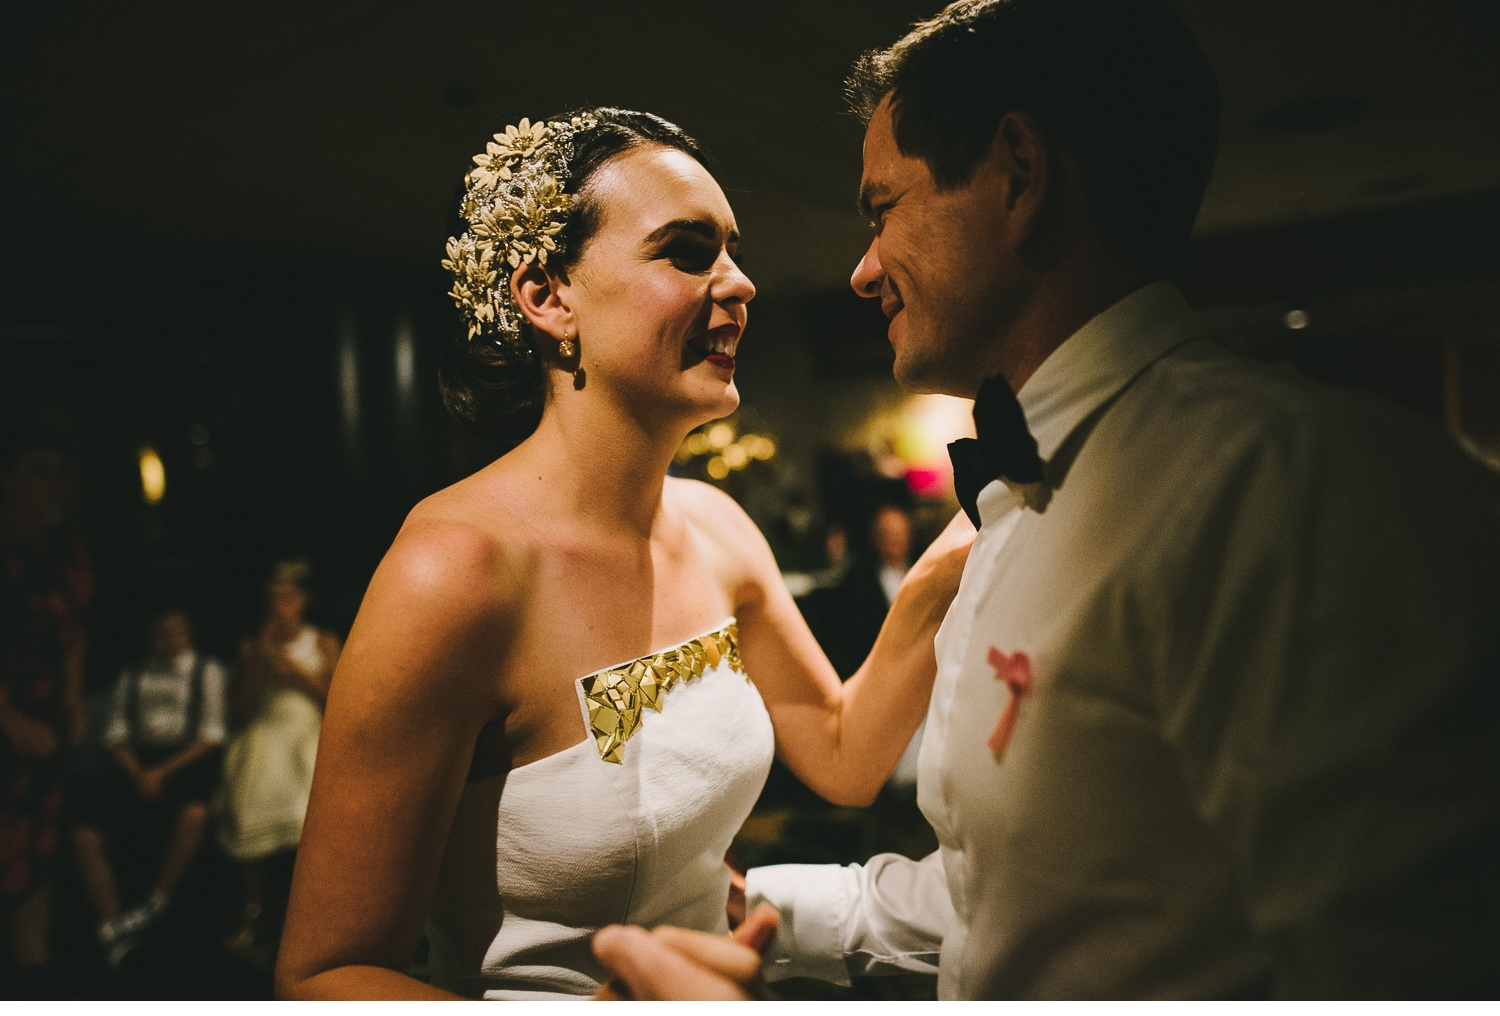 Morgan Roberts Photography_Wedding_nishi gallery hotel hotel_Jay and Lucy 4784.jpg